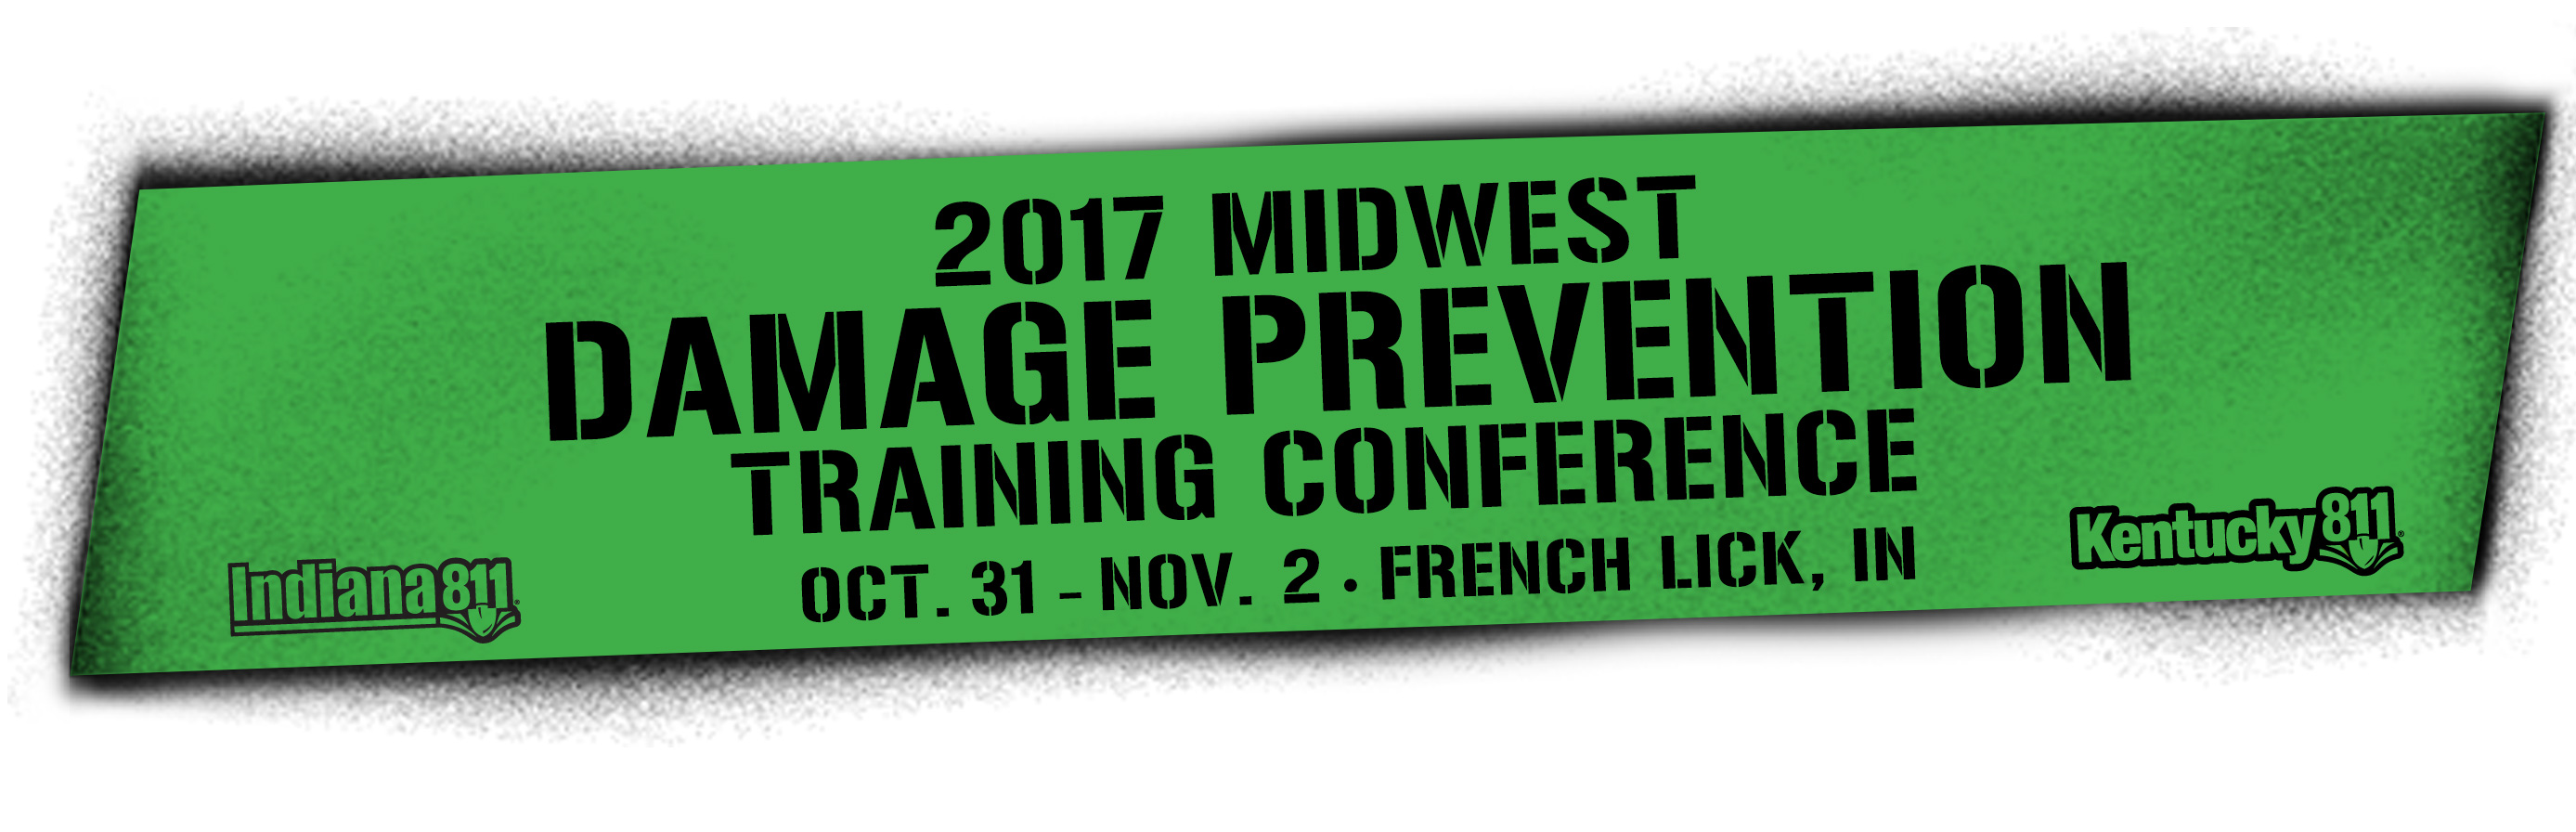 2017 Midwest Damage Prevention Training Conference